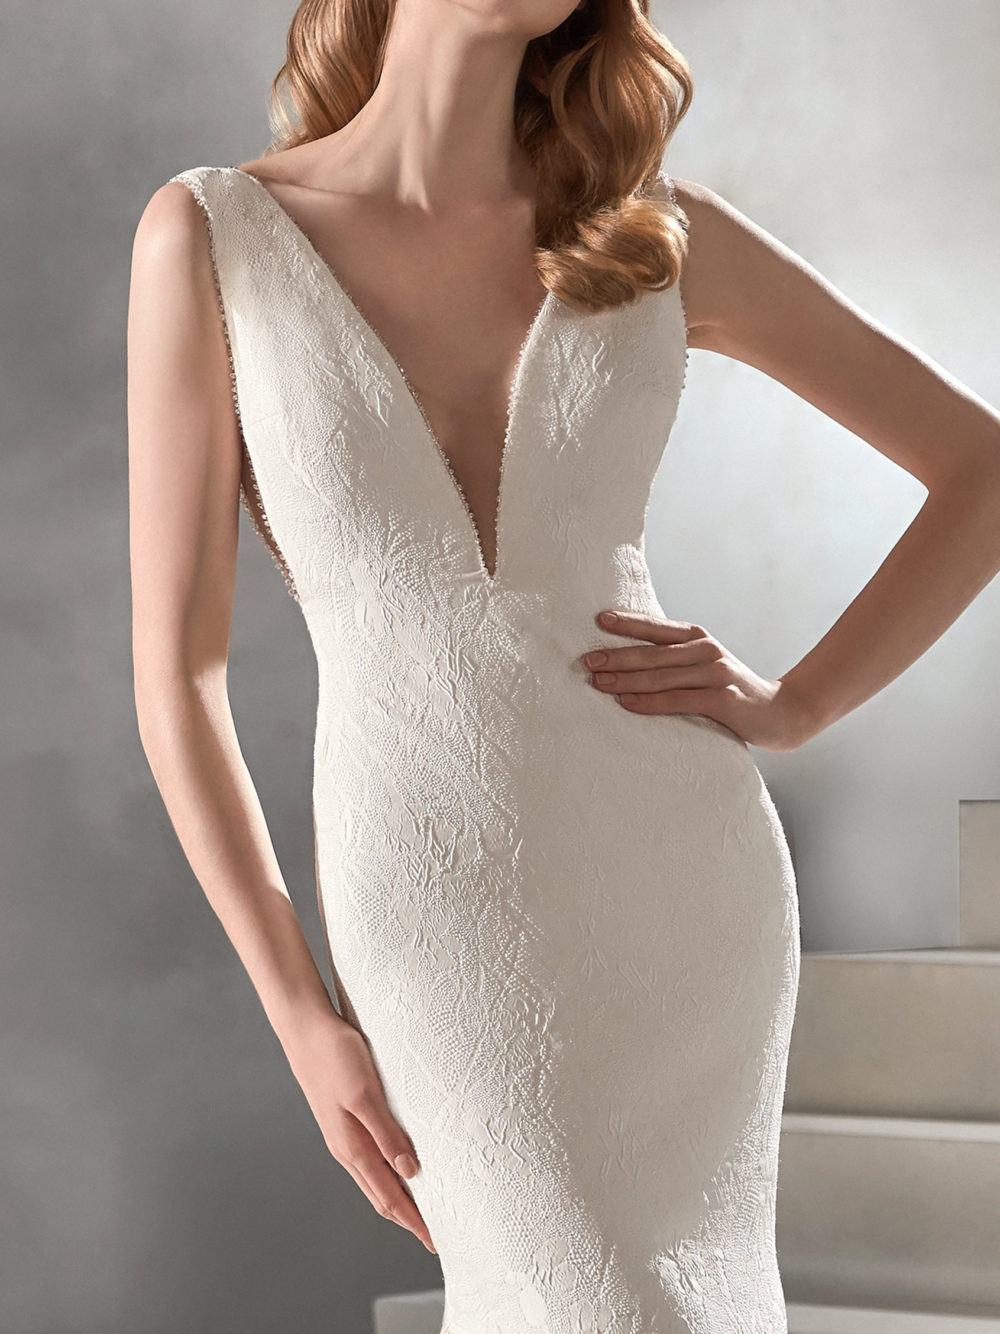 Pronovias Racimo Wedding Gown Dress 2020 Atelier Collection front detail